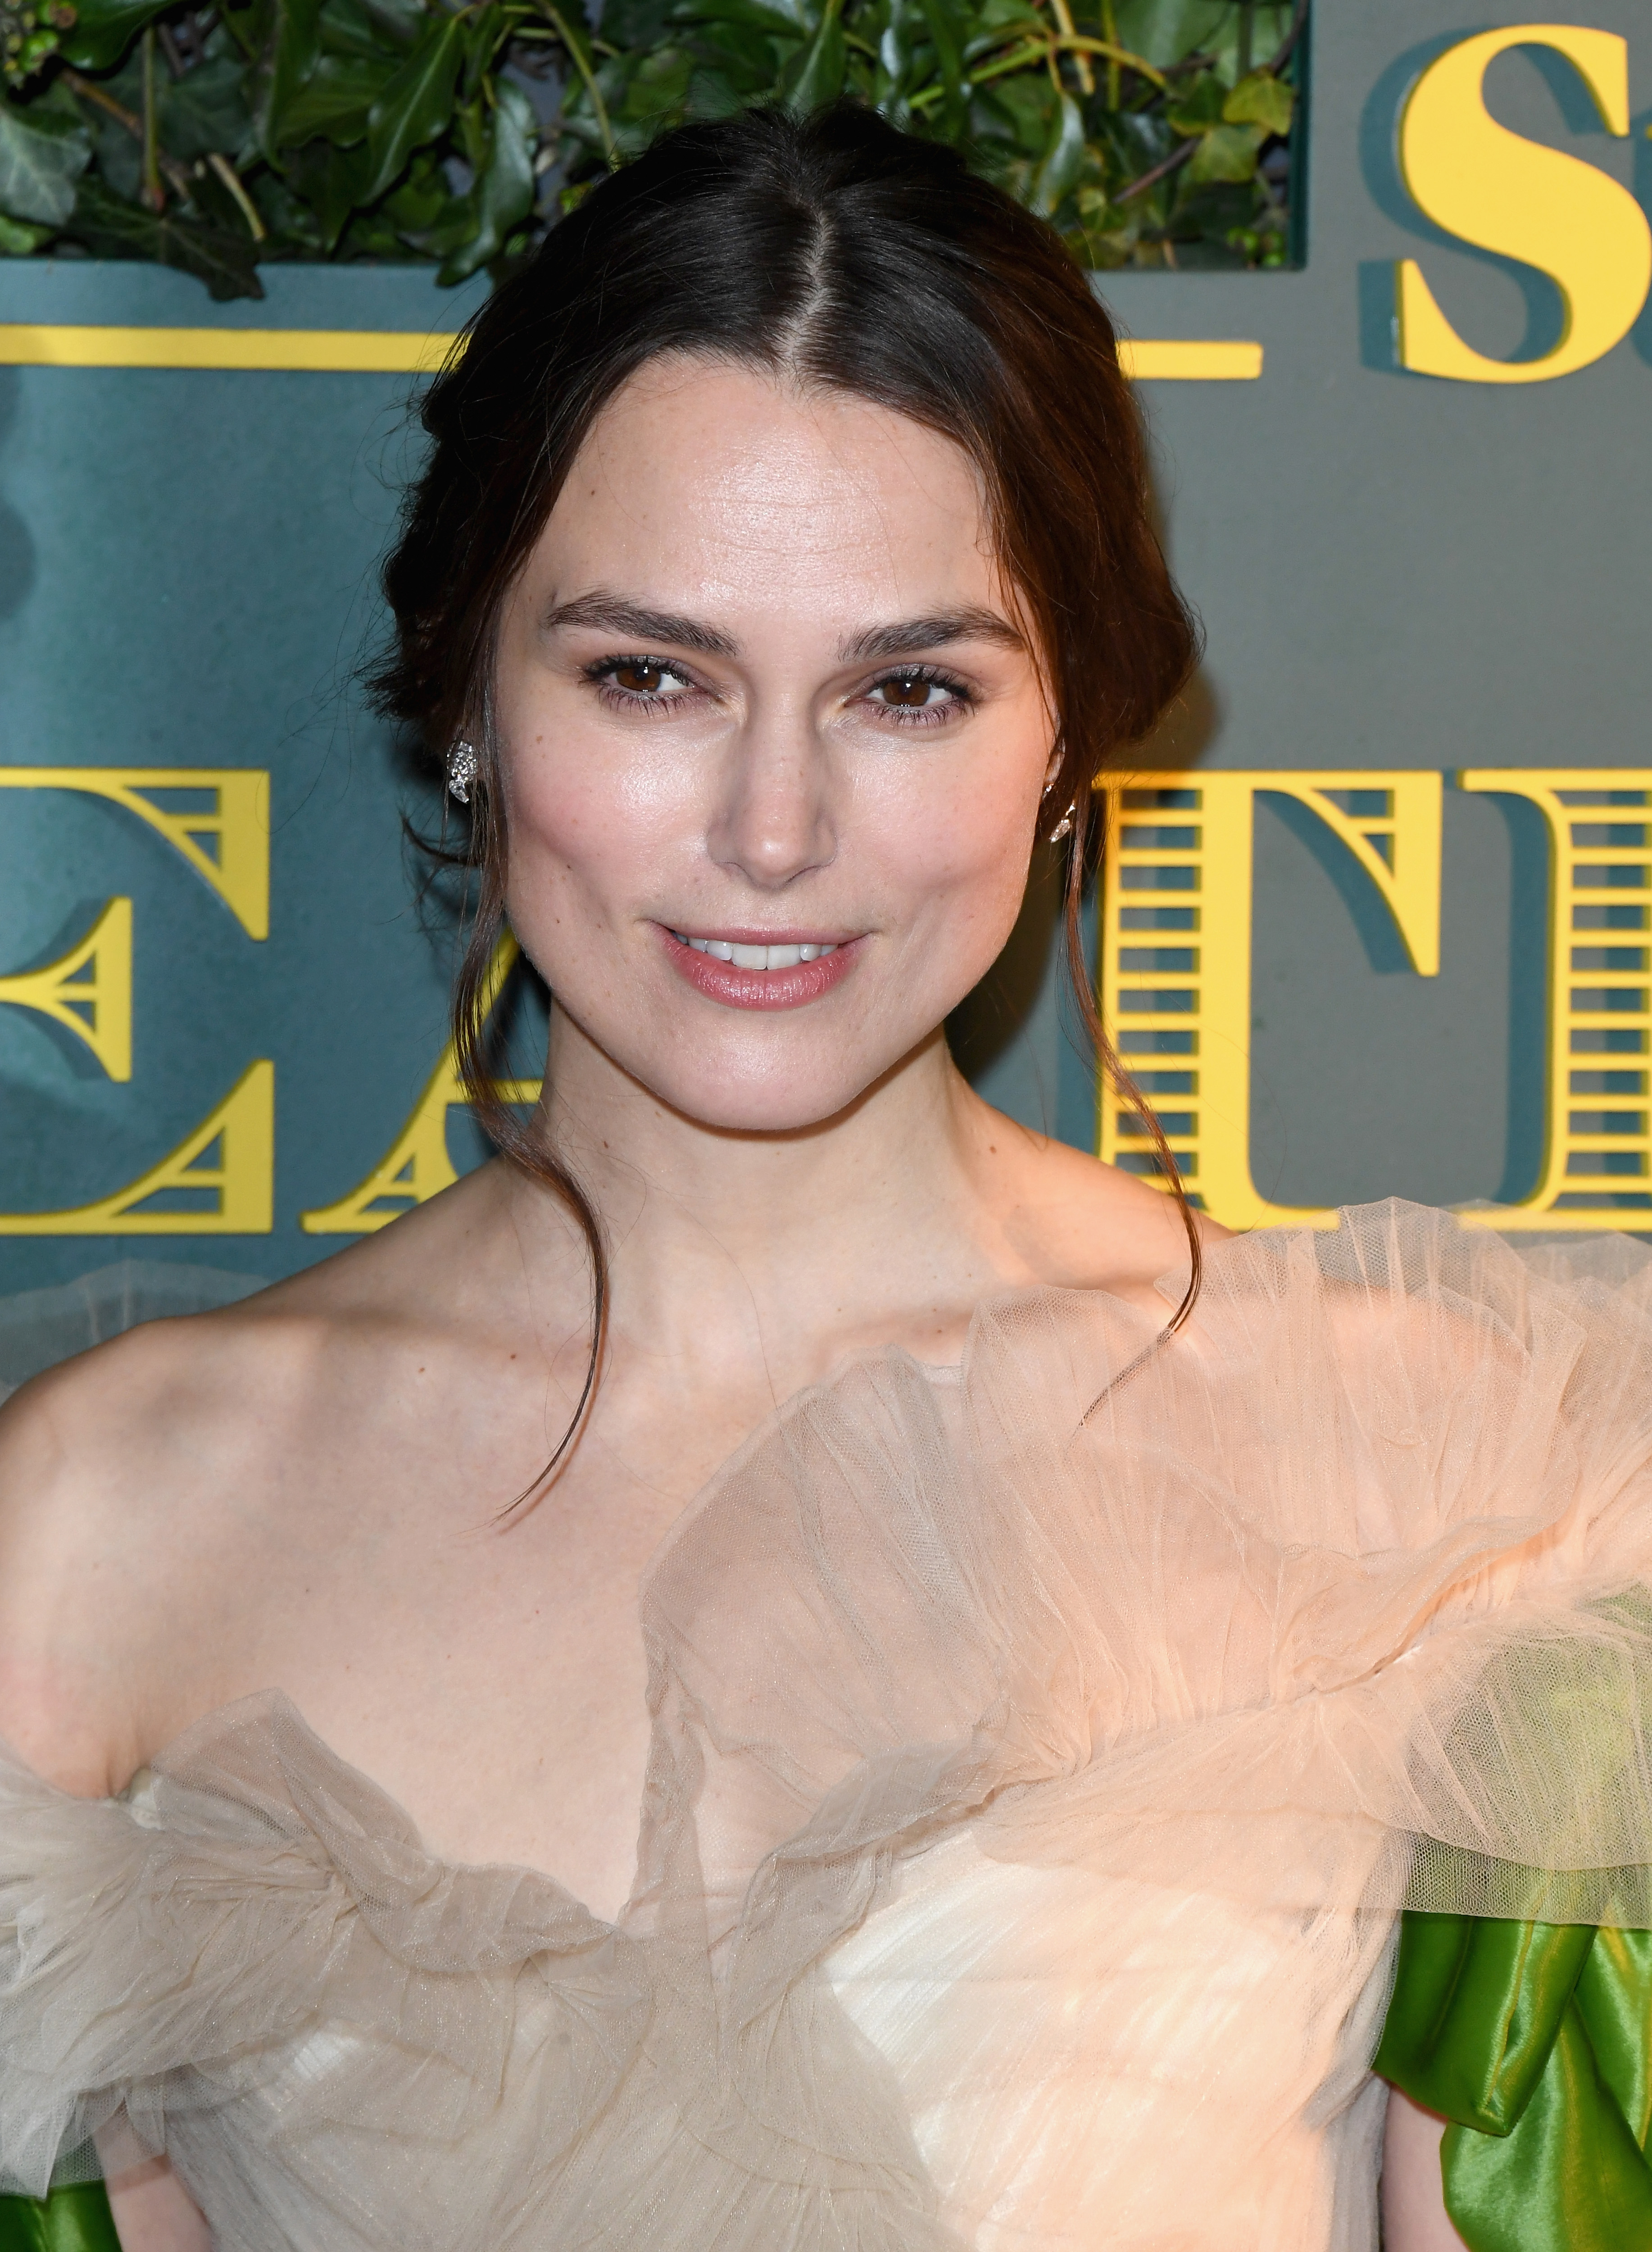 Keira Knightley attends the London Evening Standard Theatre Awards at the Theatre Royal on December 3, 2017 in London, England.